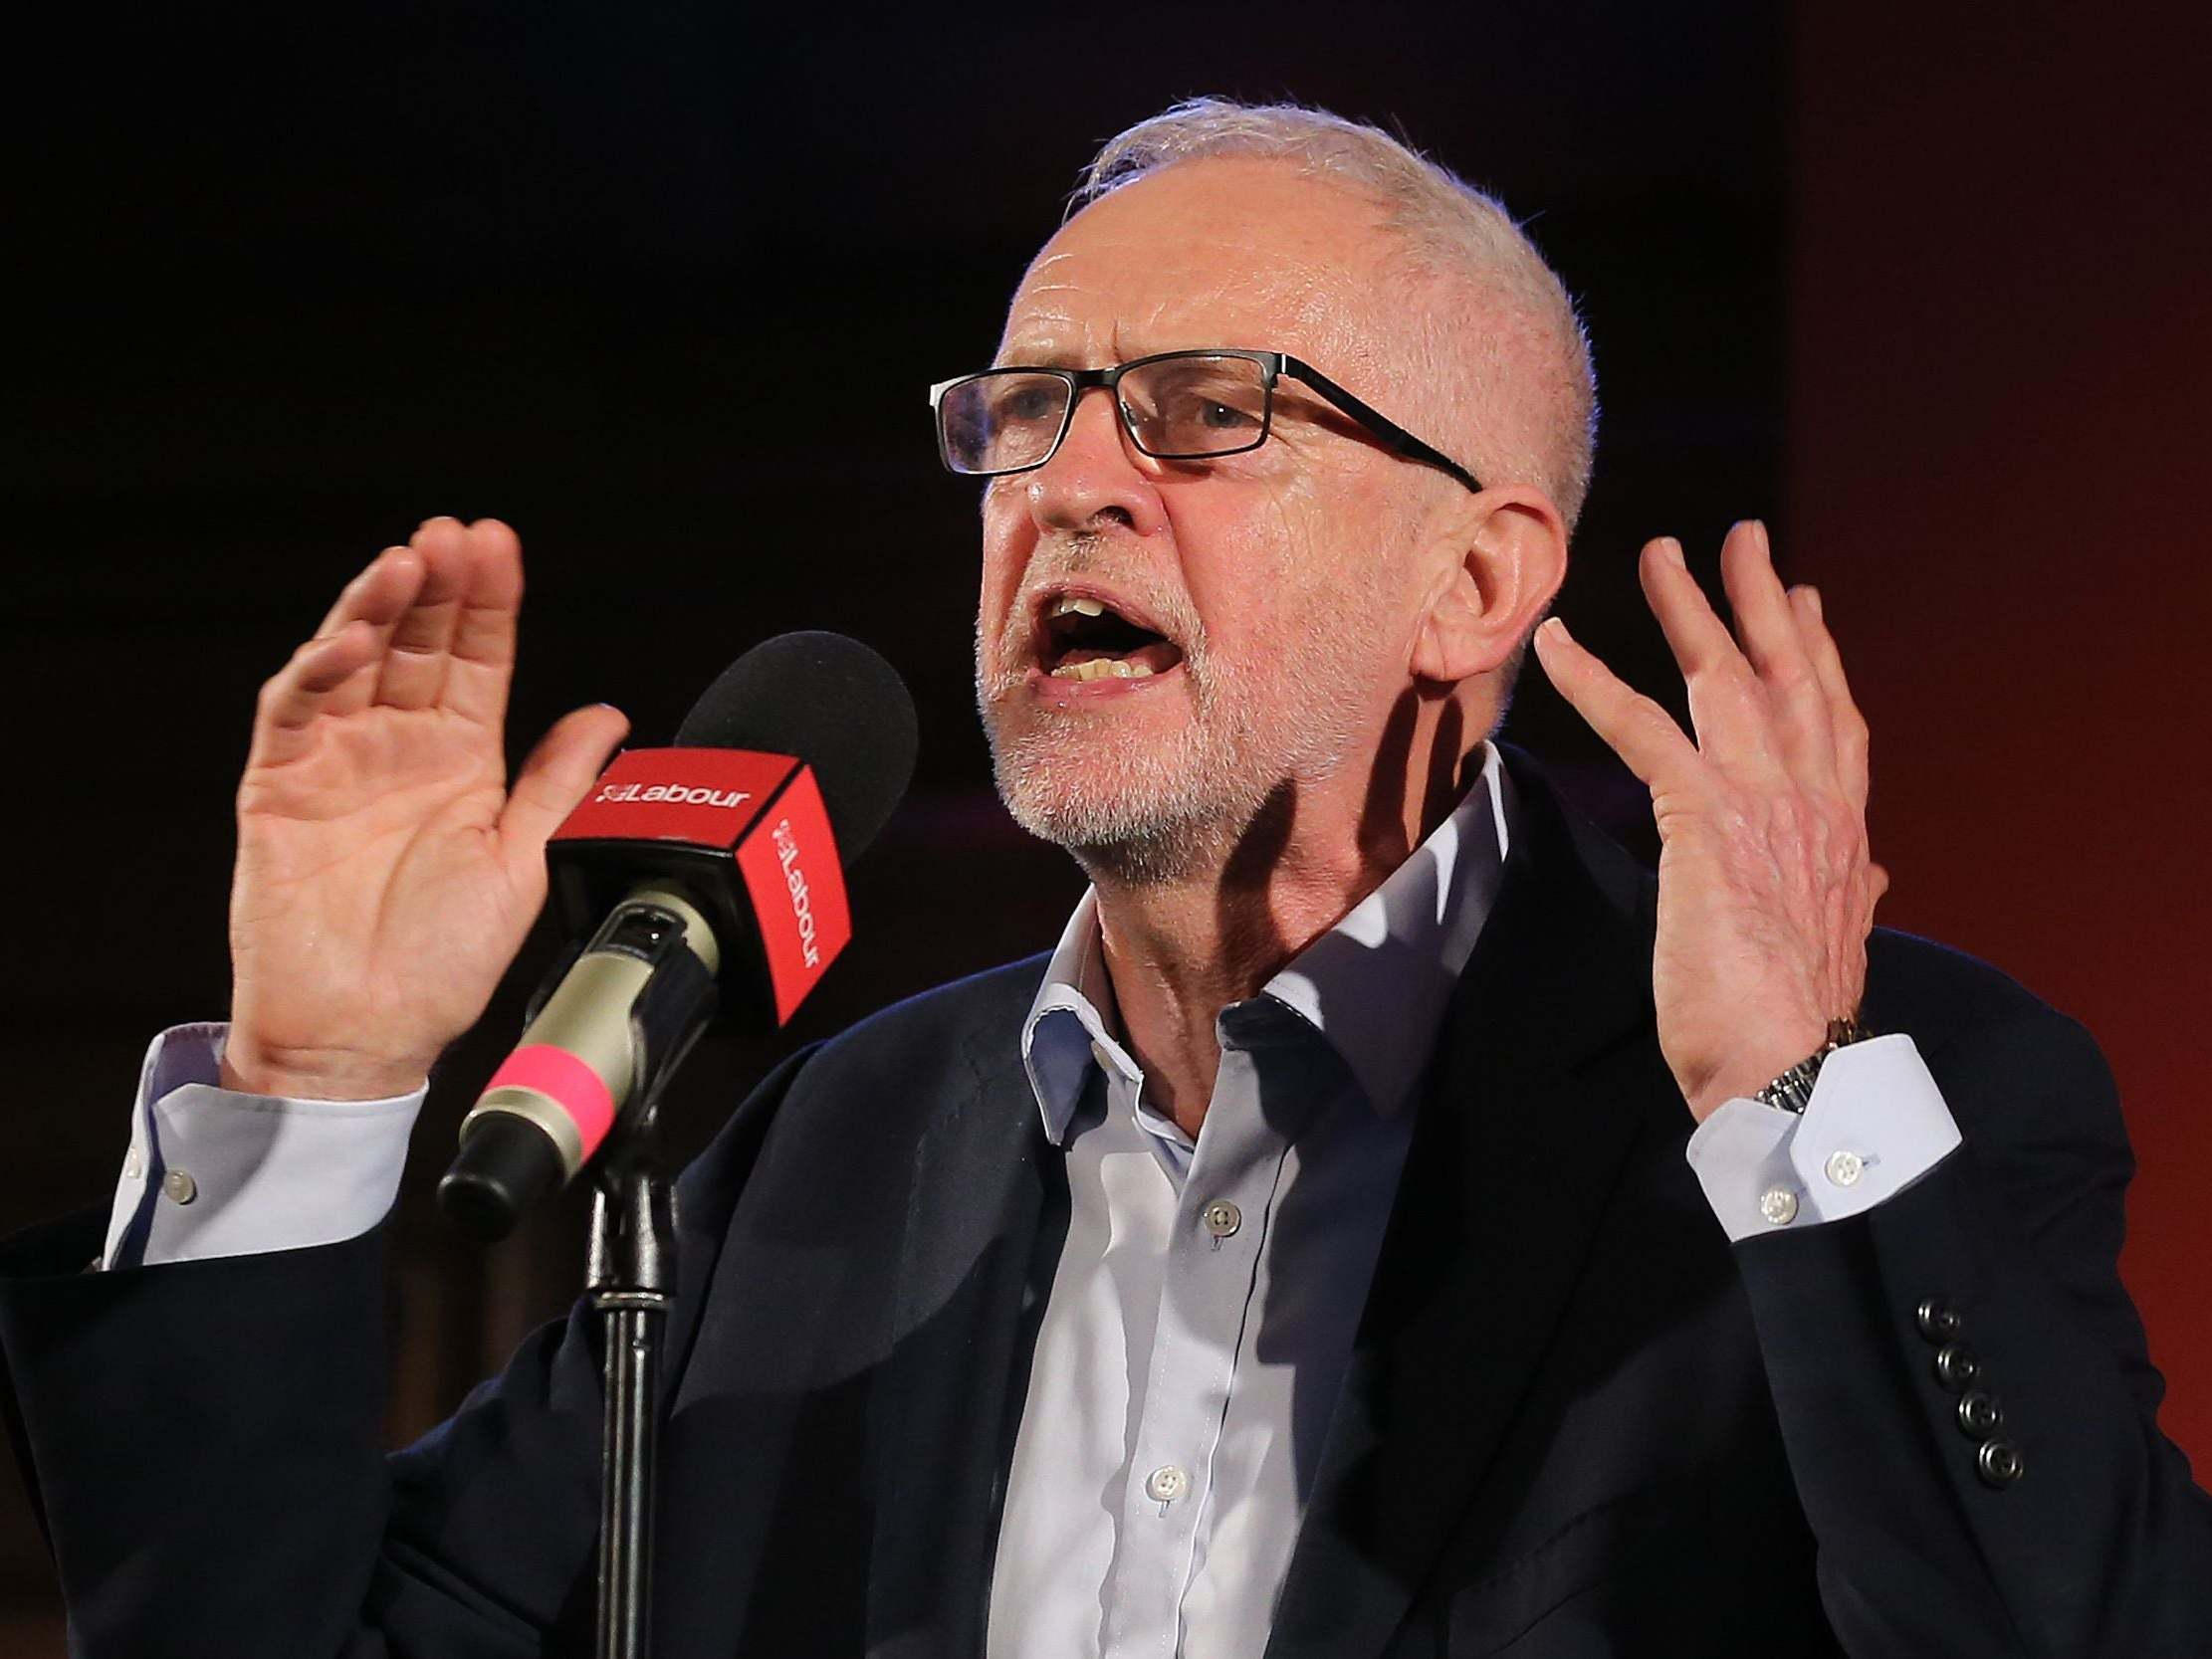 Jeremy Corbyn says voter ID plans will discriminate against ethnic m…